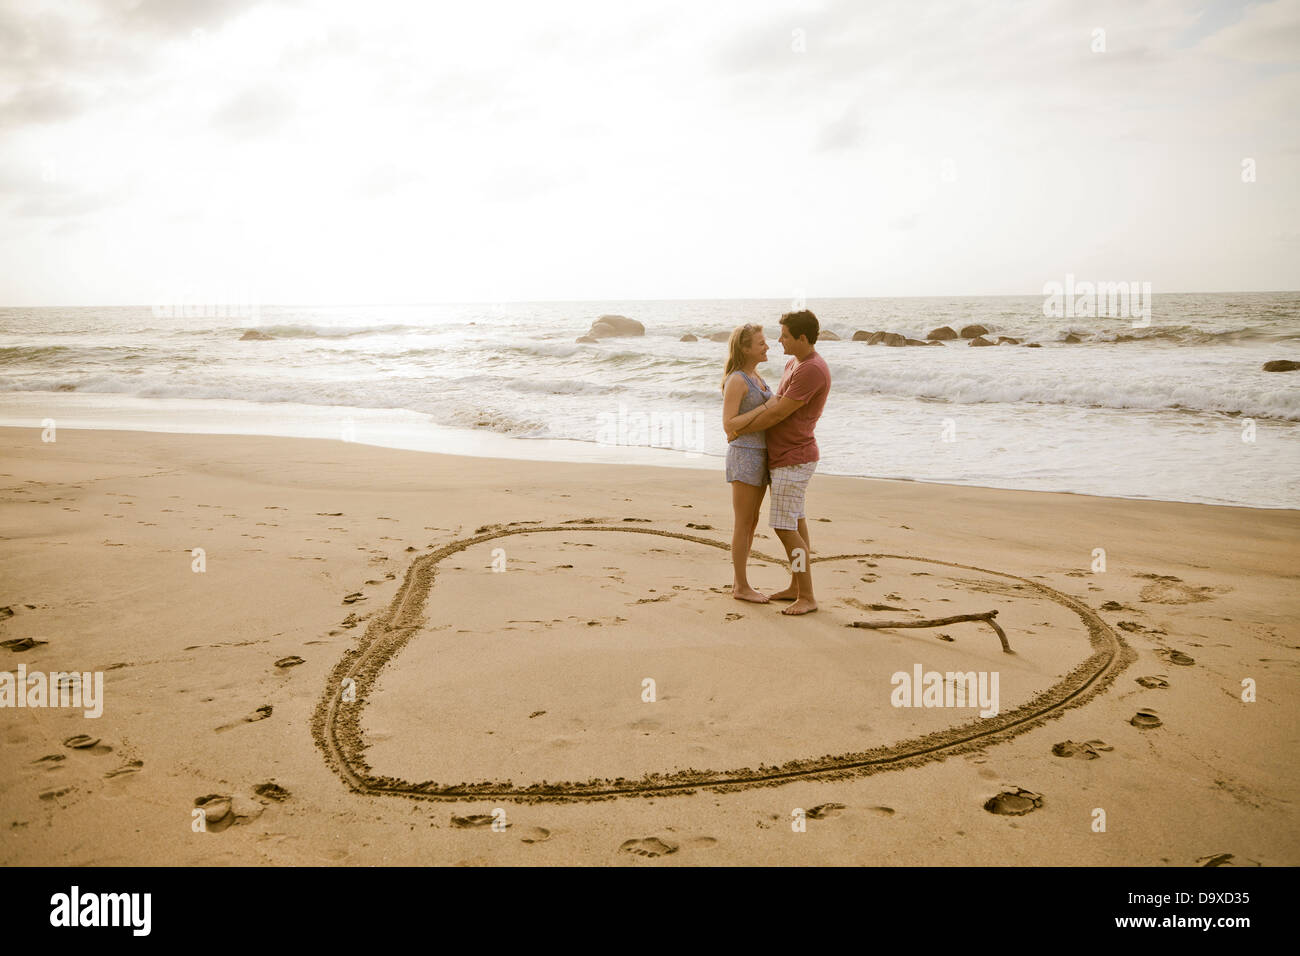 Young couple standing in heart design on beach - Stock Image